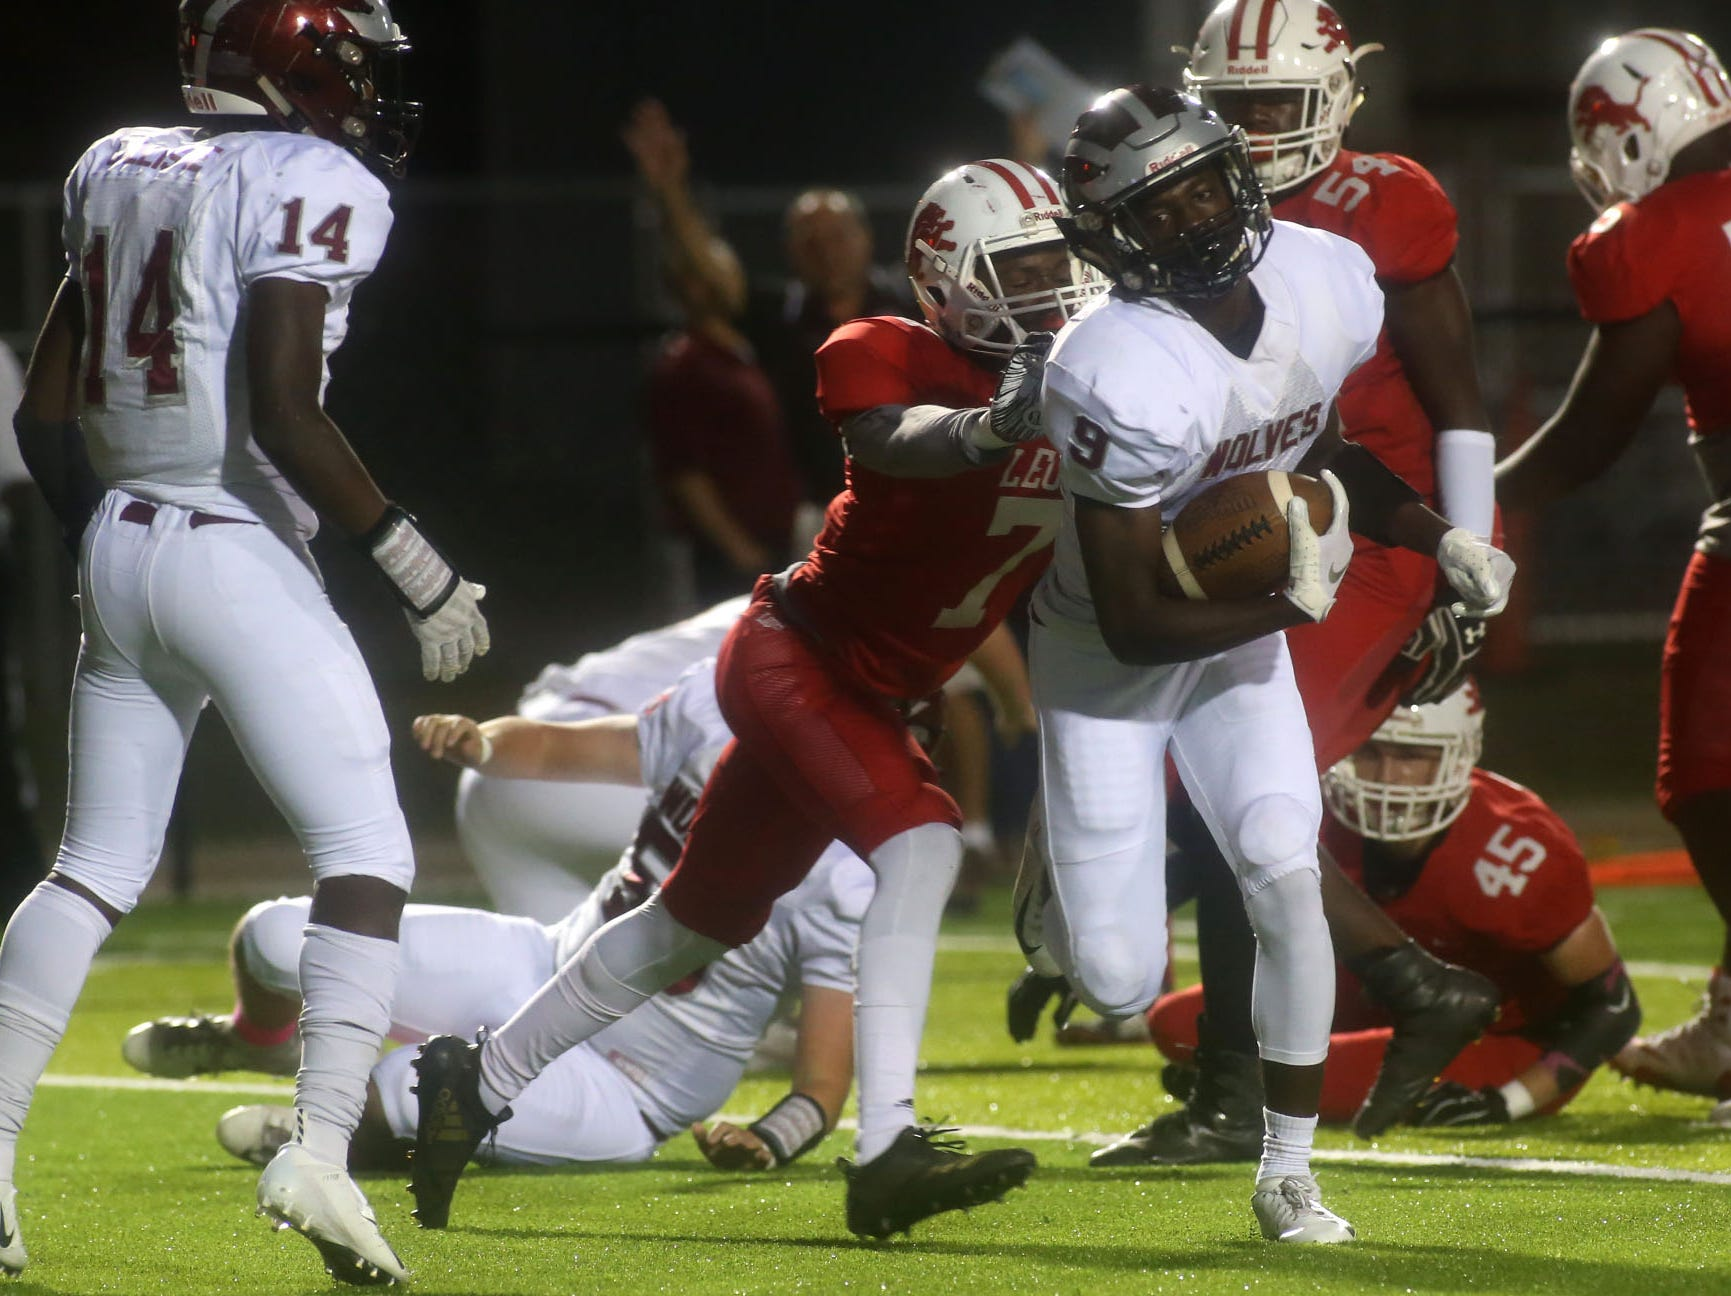 The Leon lions face off against the Chiles timberwolves in high school football at Gene Cox Stadium on Friday, Oct. 26, 2018.